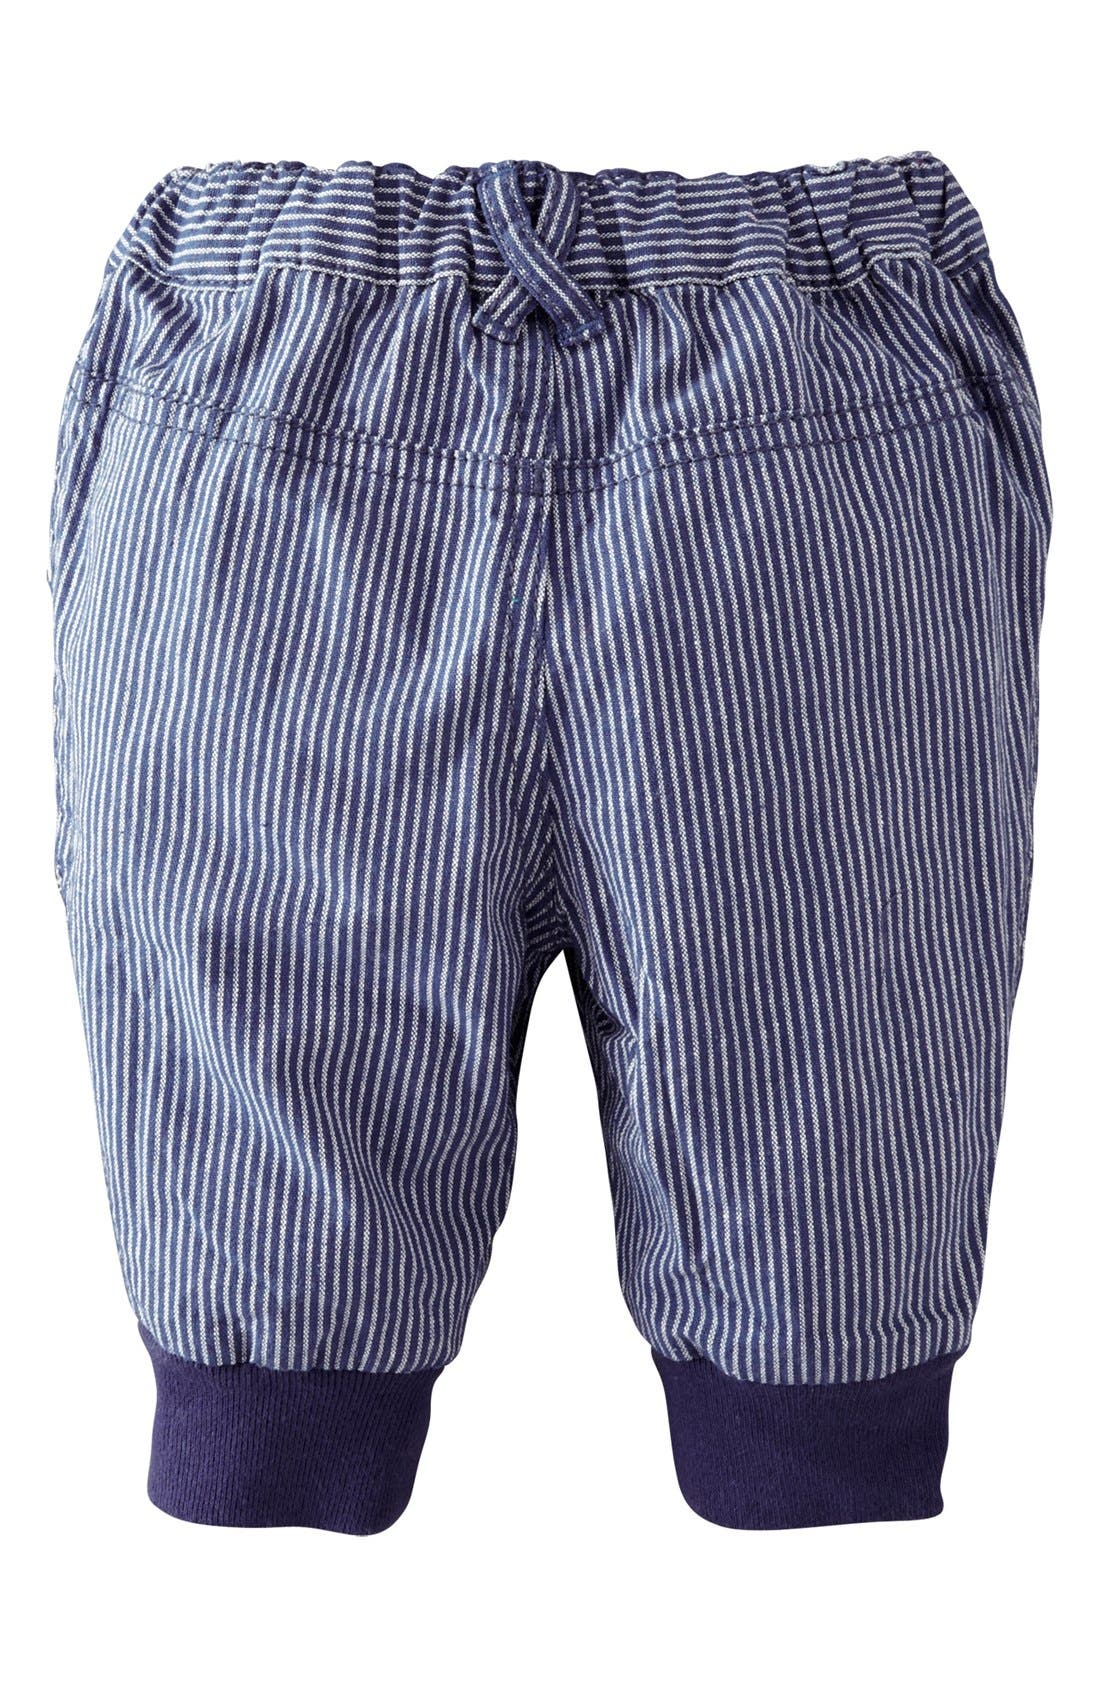 Alternate Image 2  - Mini Boden Ribbed Cuff Pants (Baby Boys)